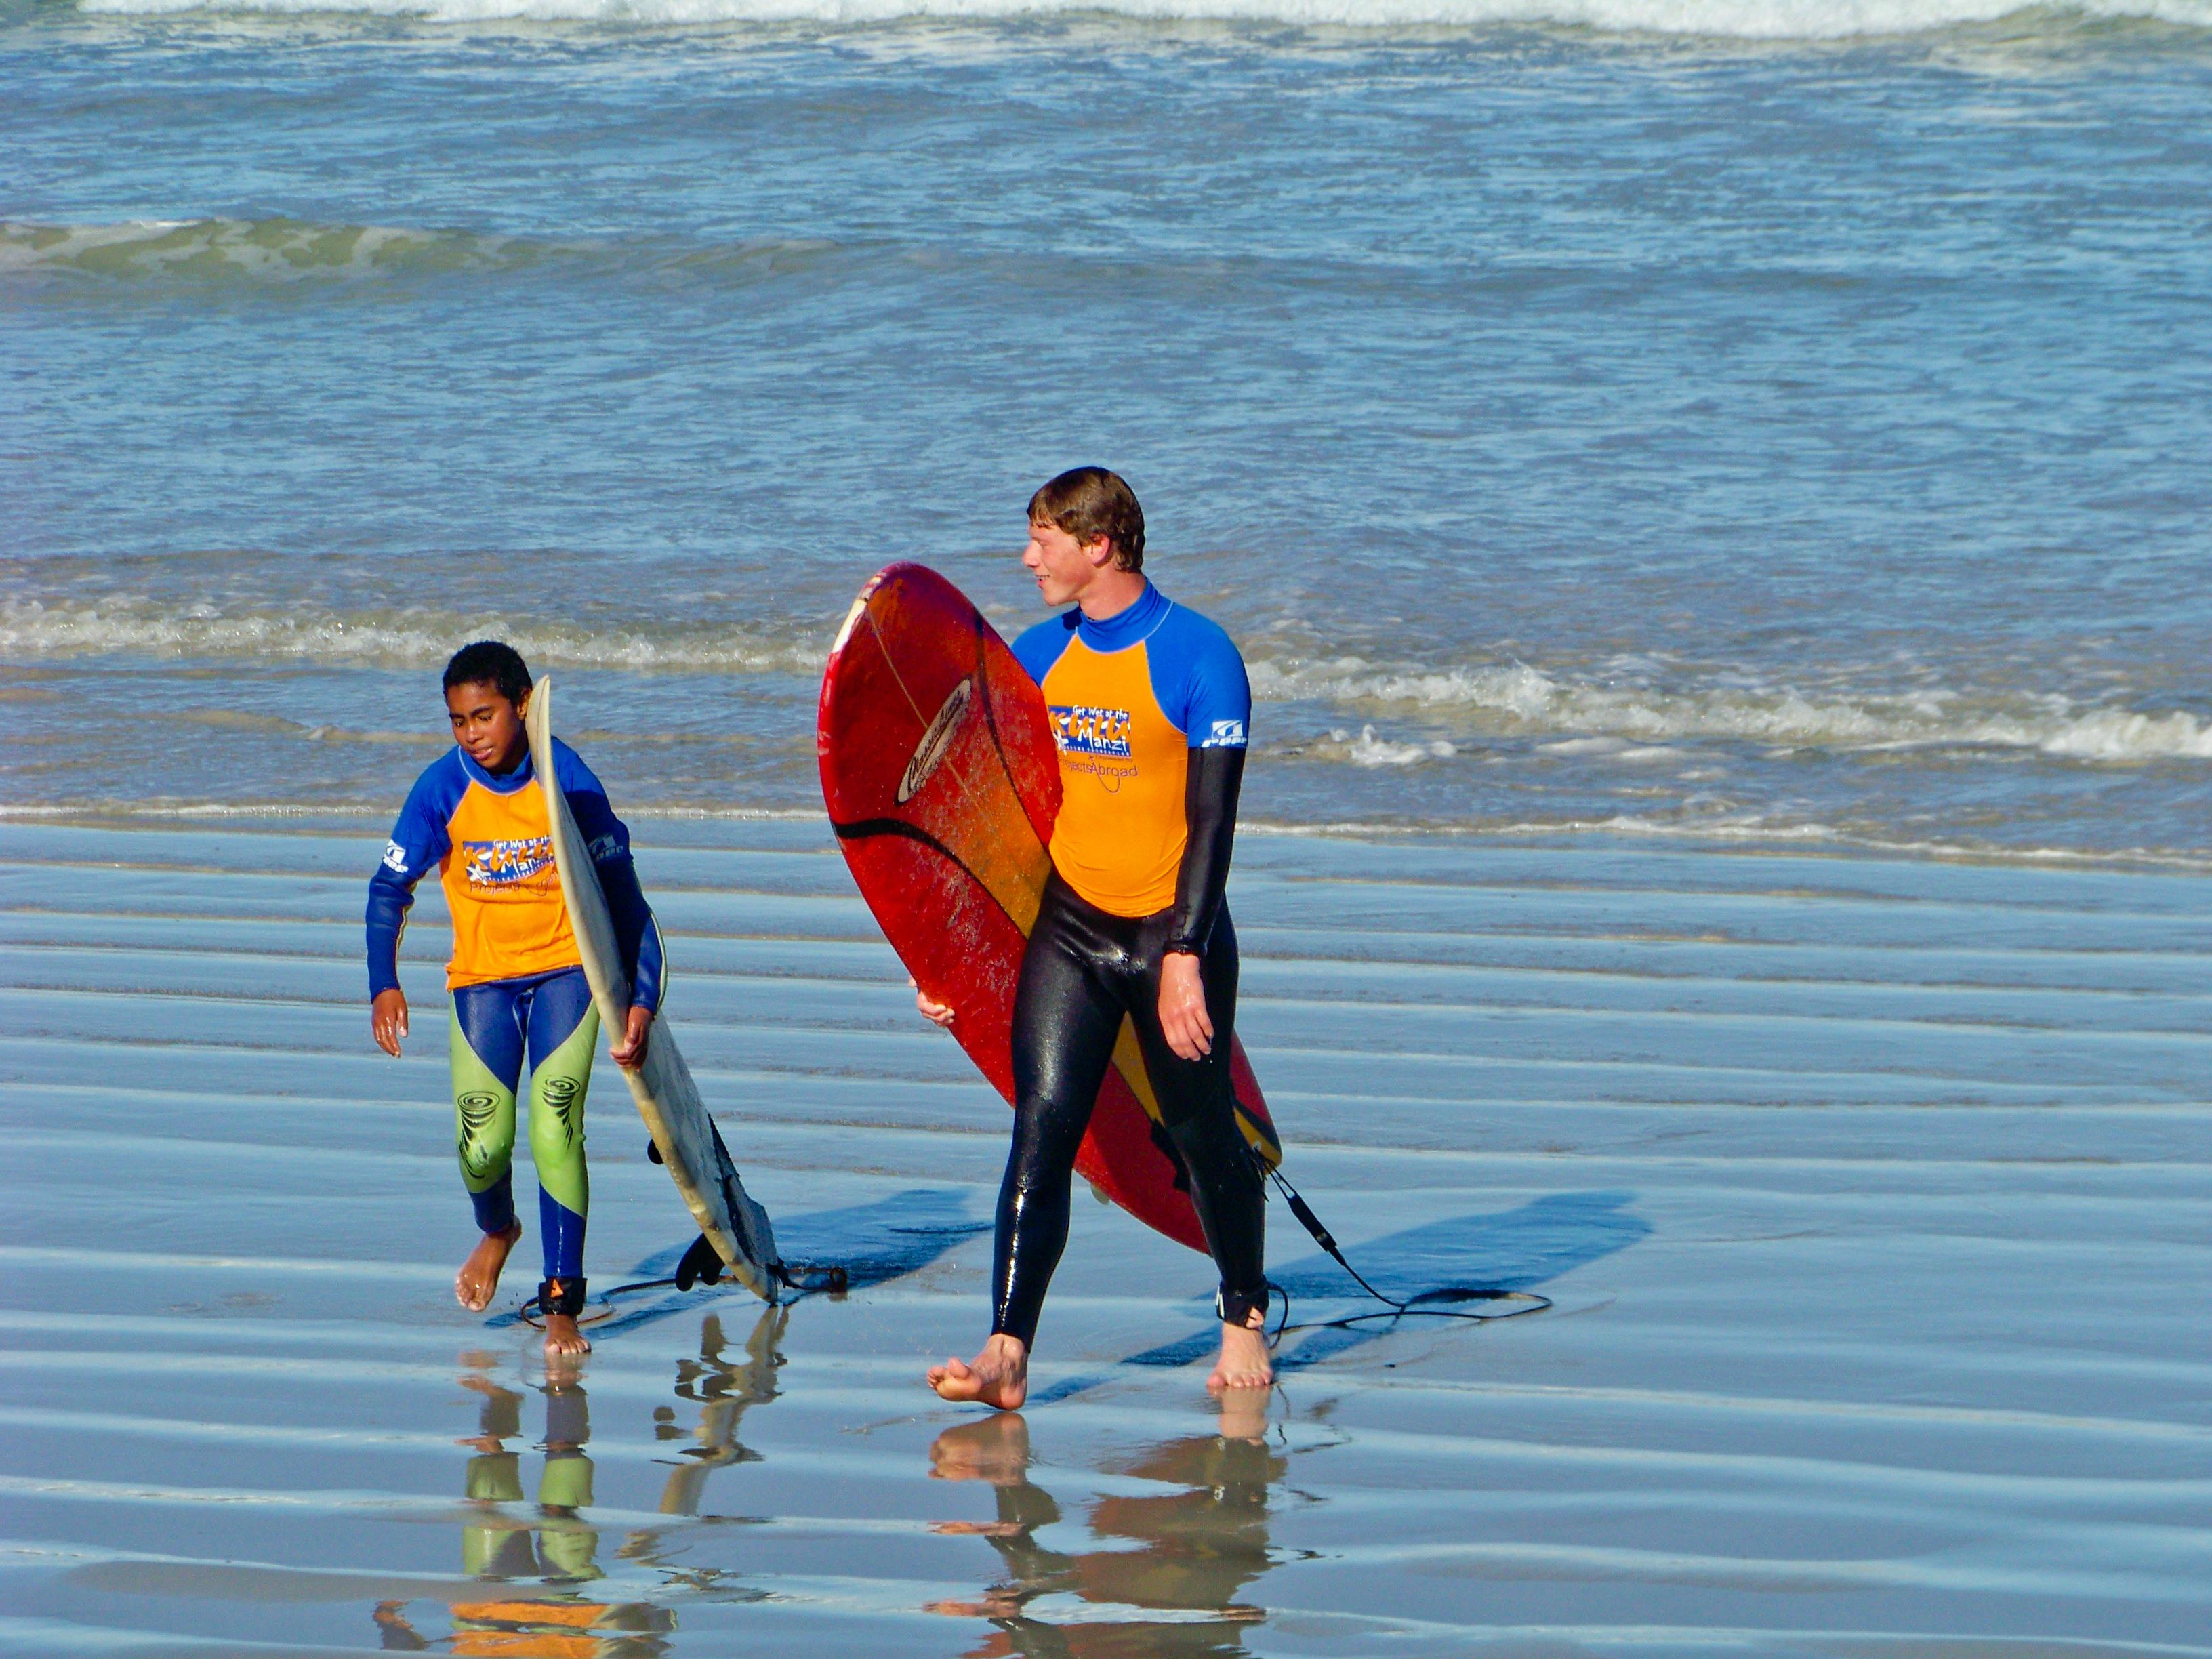 A young surfer and a volunteer walk along the beach during a project dedicated to teaching sport abroad.